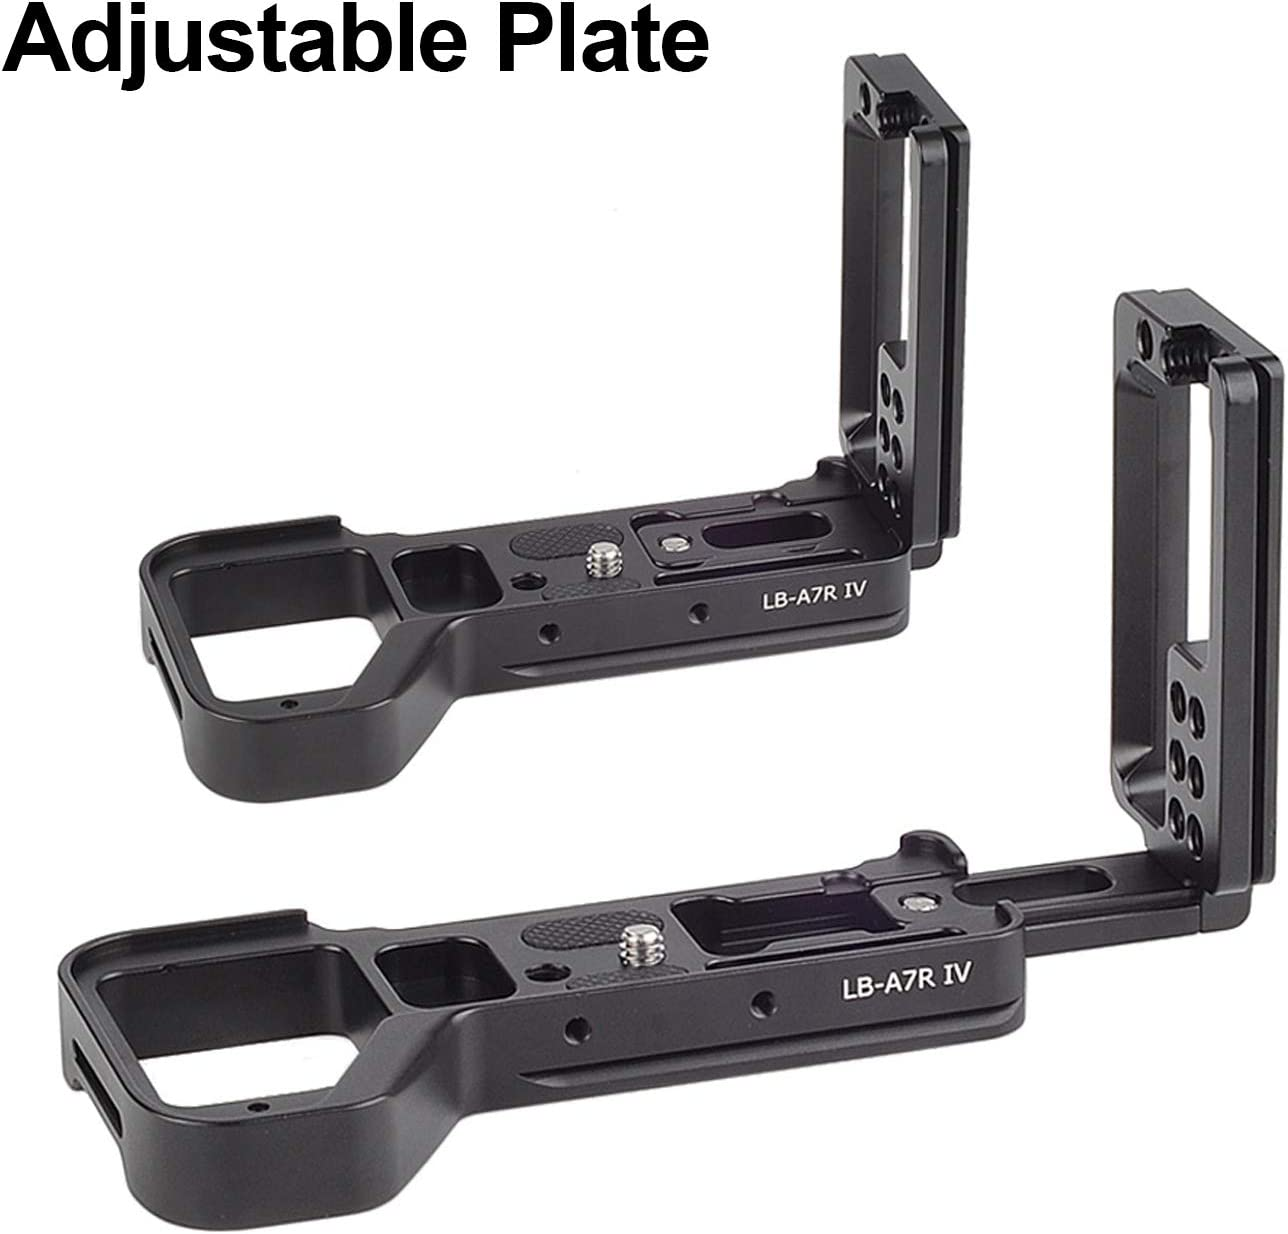 STSEETOP A7RIV L Bracket Quick Release Plate Camera Cage Accessory Adjustable L Shape Plate Bracket for Sony A7IV A7RIV A74 A7R4